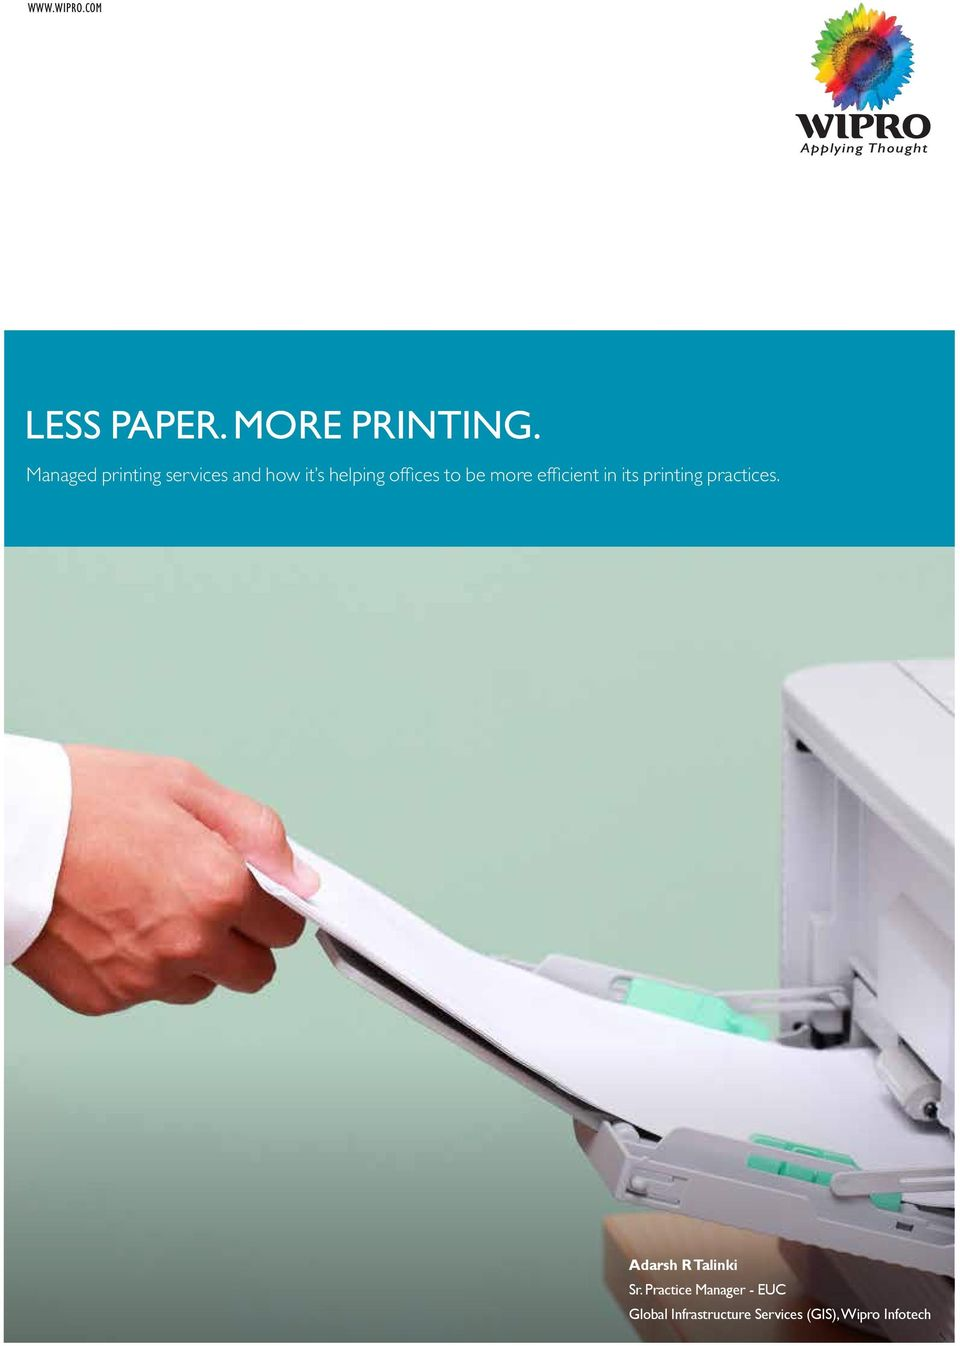 be more efficient in its printing practices.